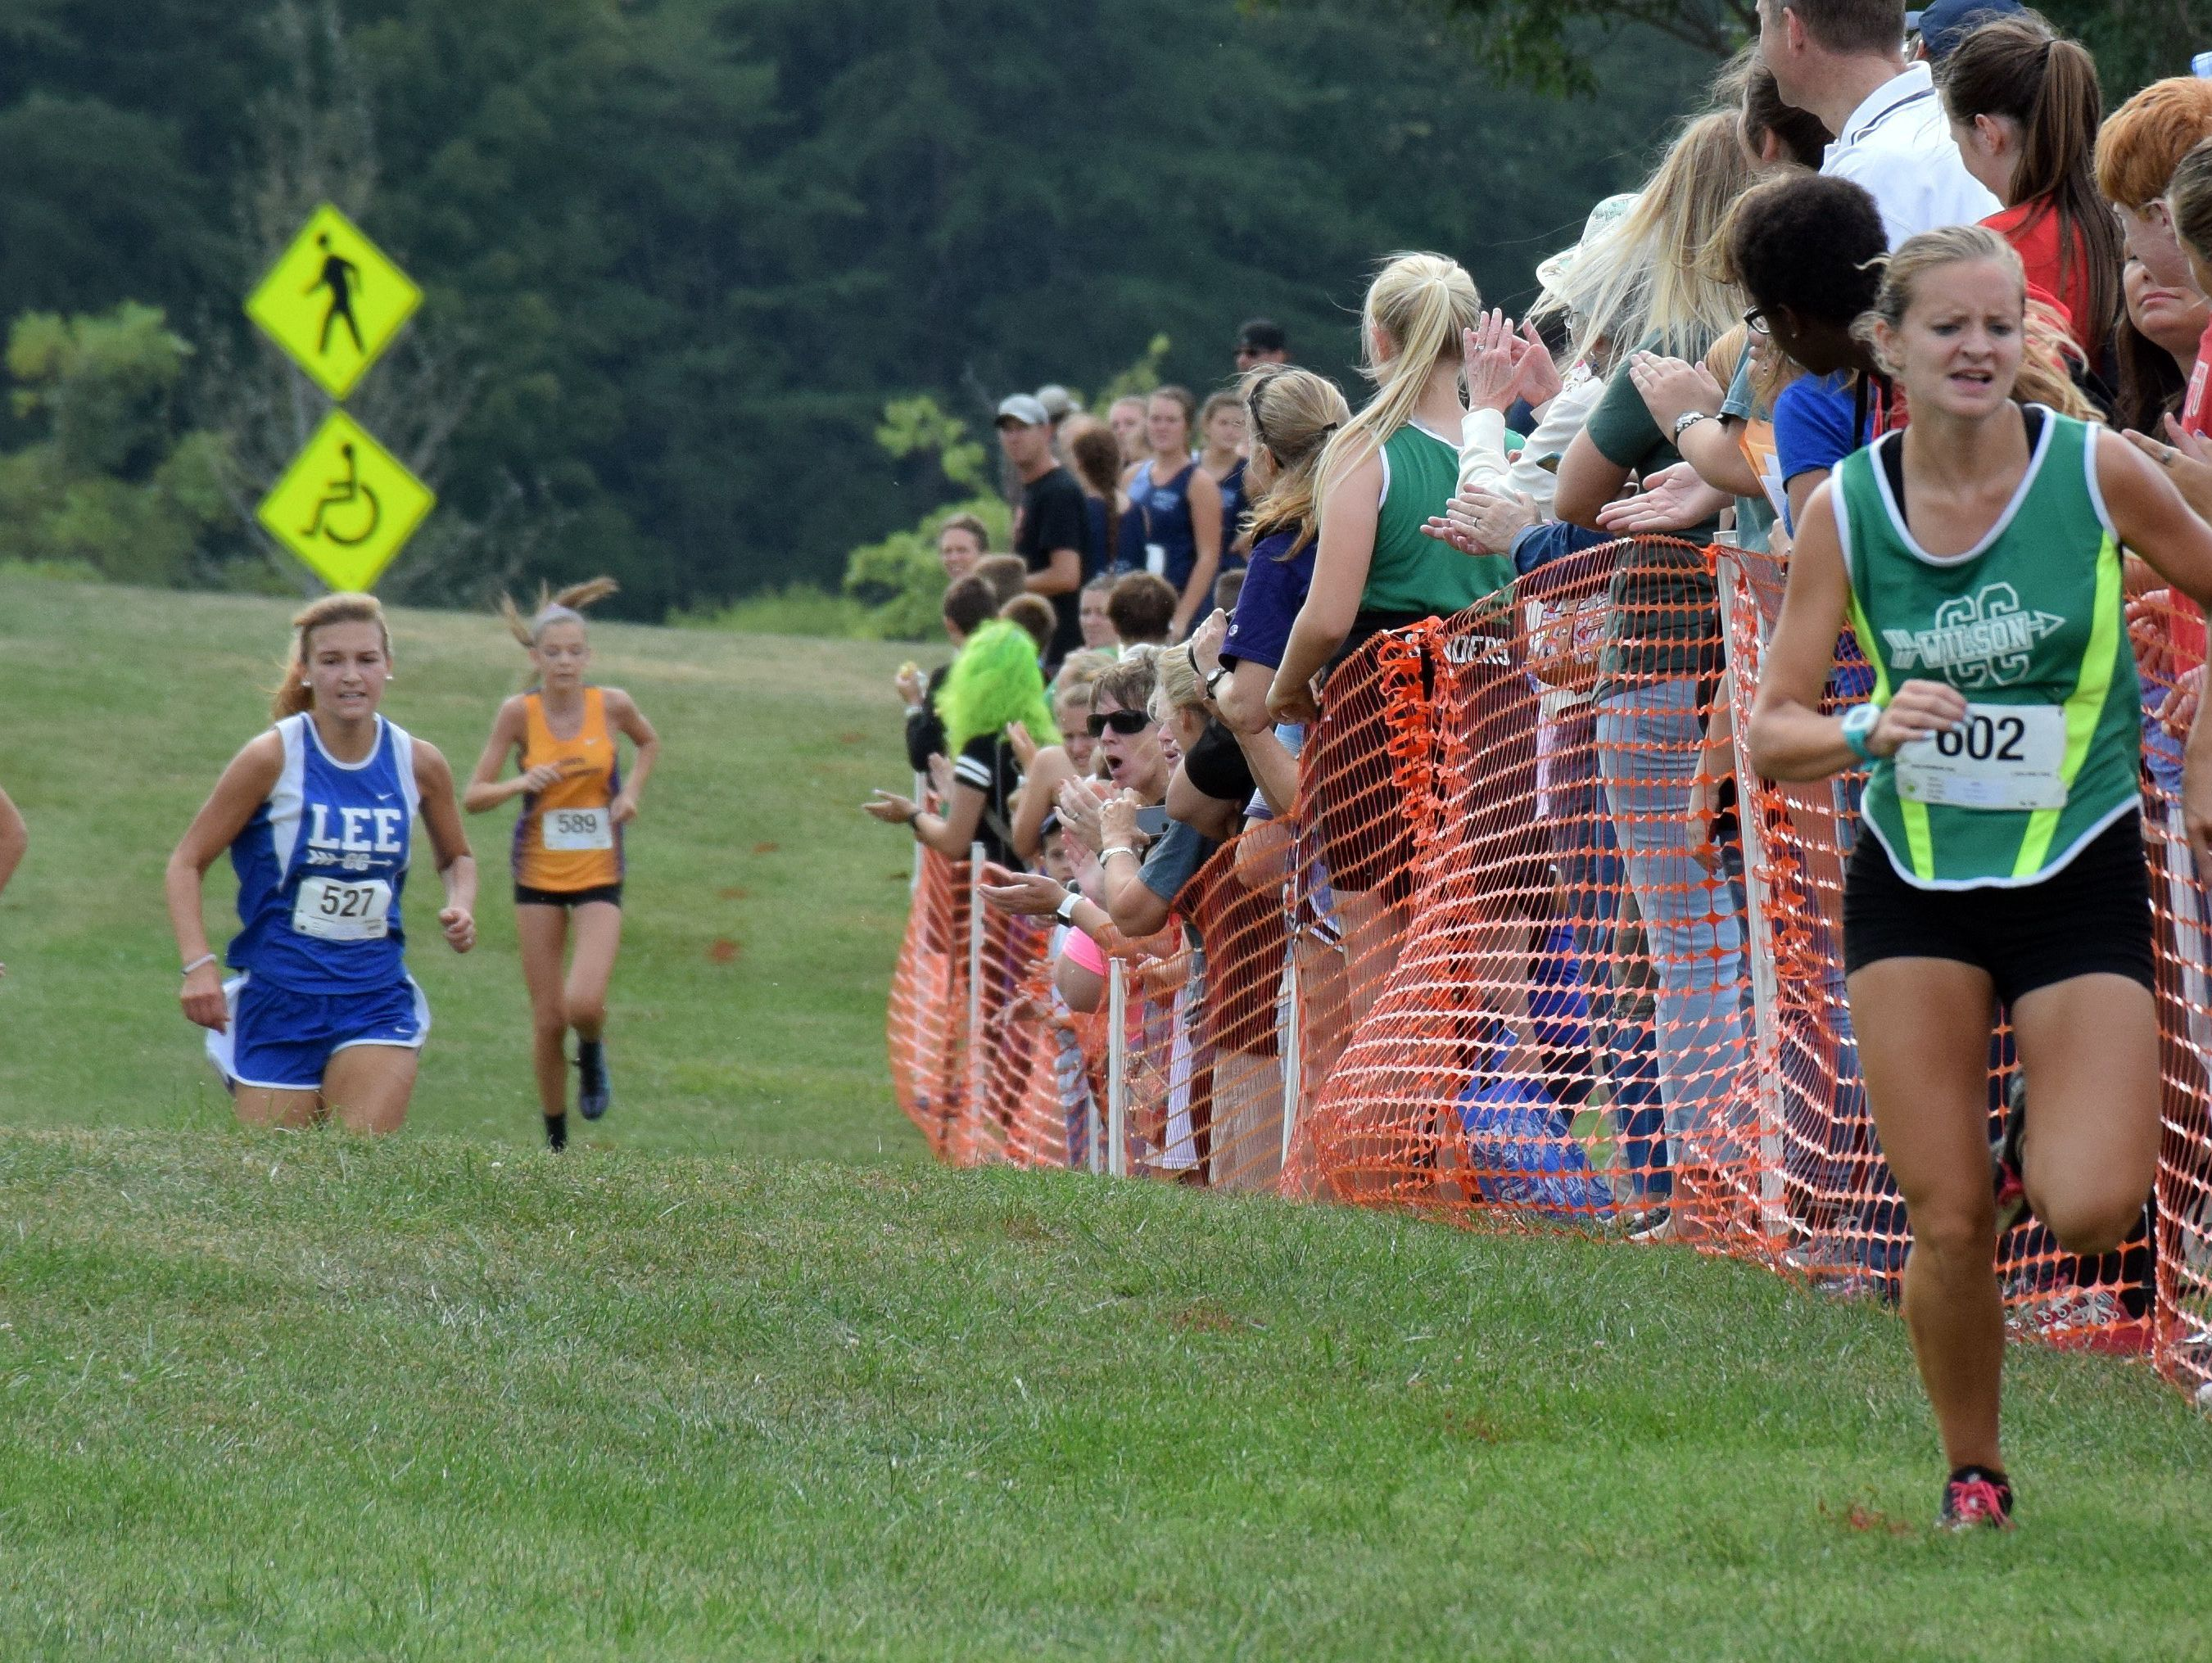 Wilson Memorial's Natalie Prye, right, leads Collegiate's Maddy Watkins, left, and Robert E. Lee's Sophie Kozlowski on her way to winning the varsity girls race at the Augusta County Cross Country Invitational at Wilson Workforce and Rehabilitation Center in Fishersville, Va., on Saturday, Sept. 17, 2016.